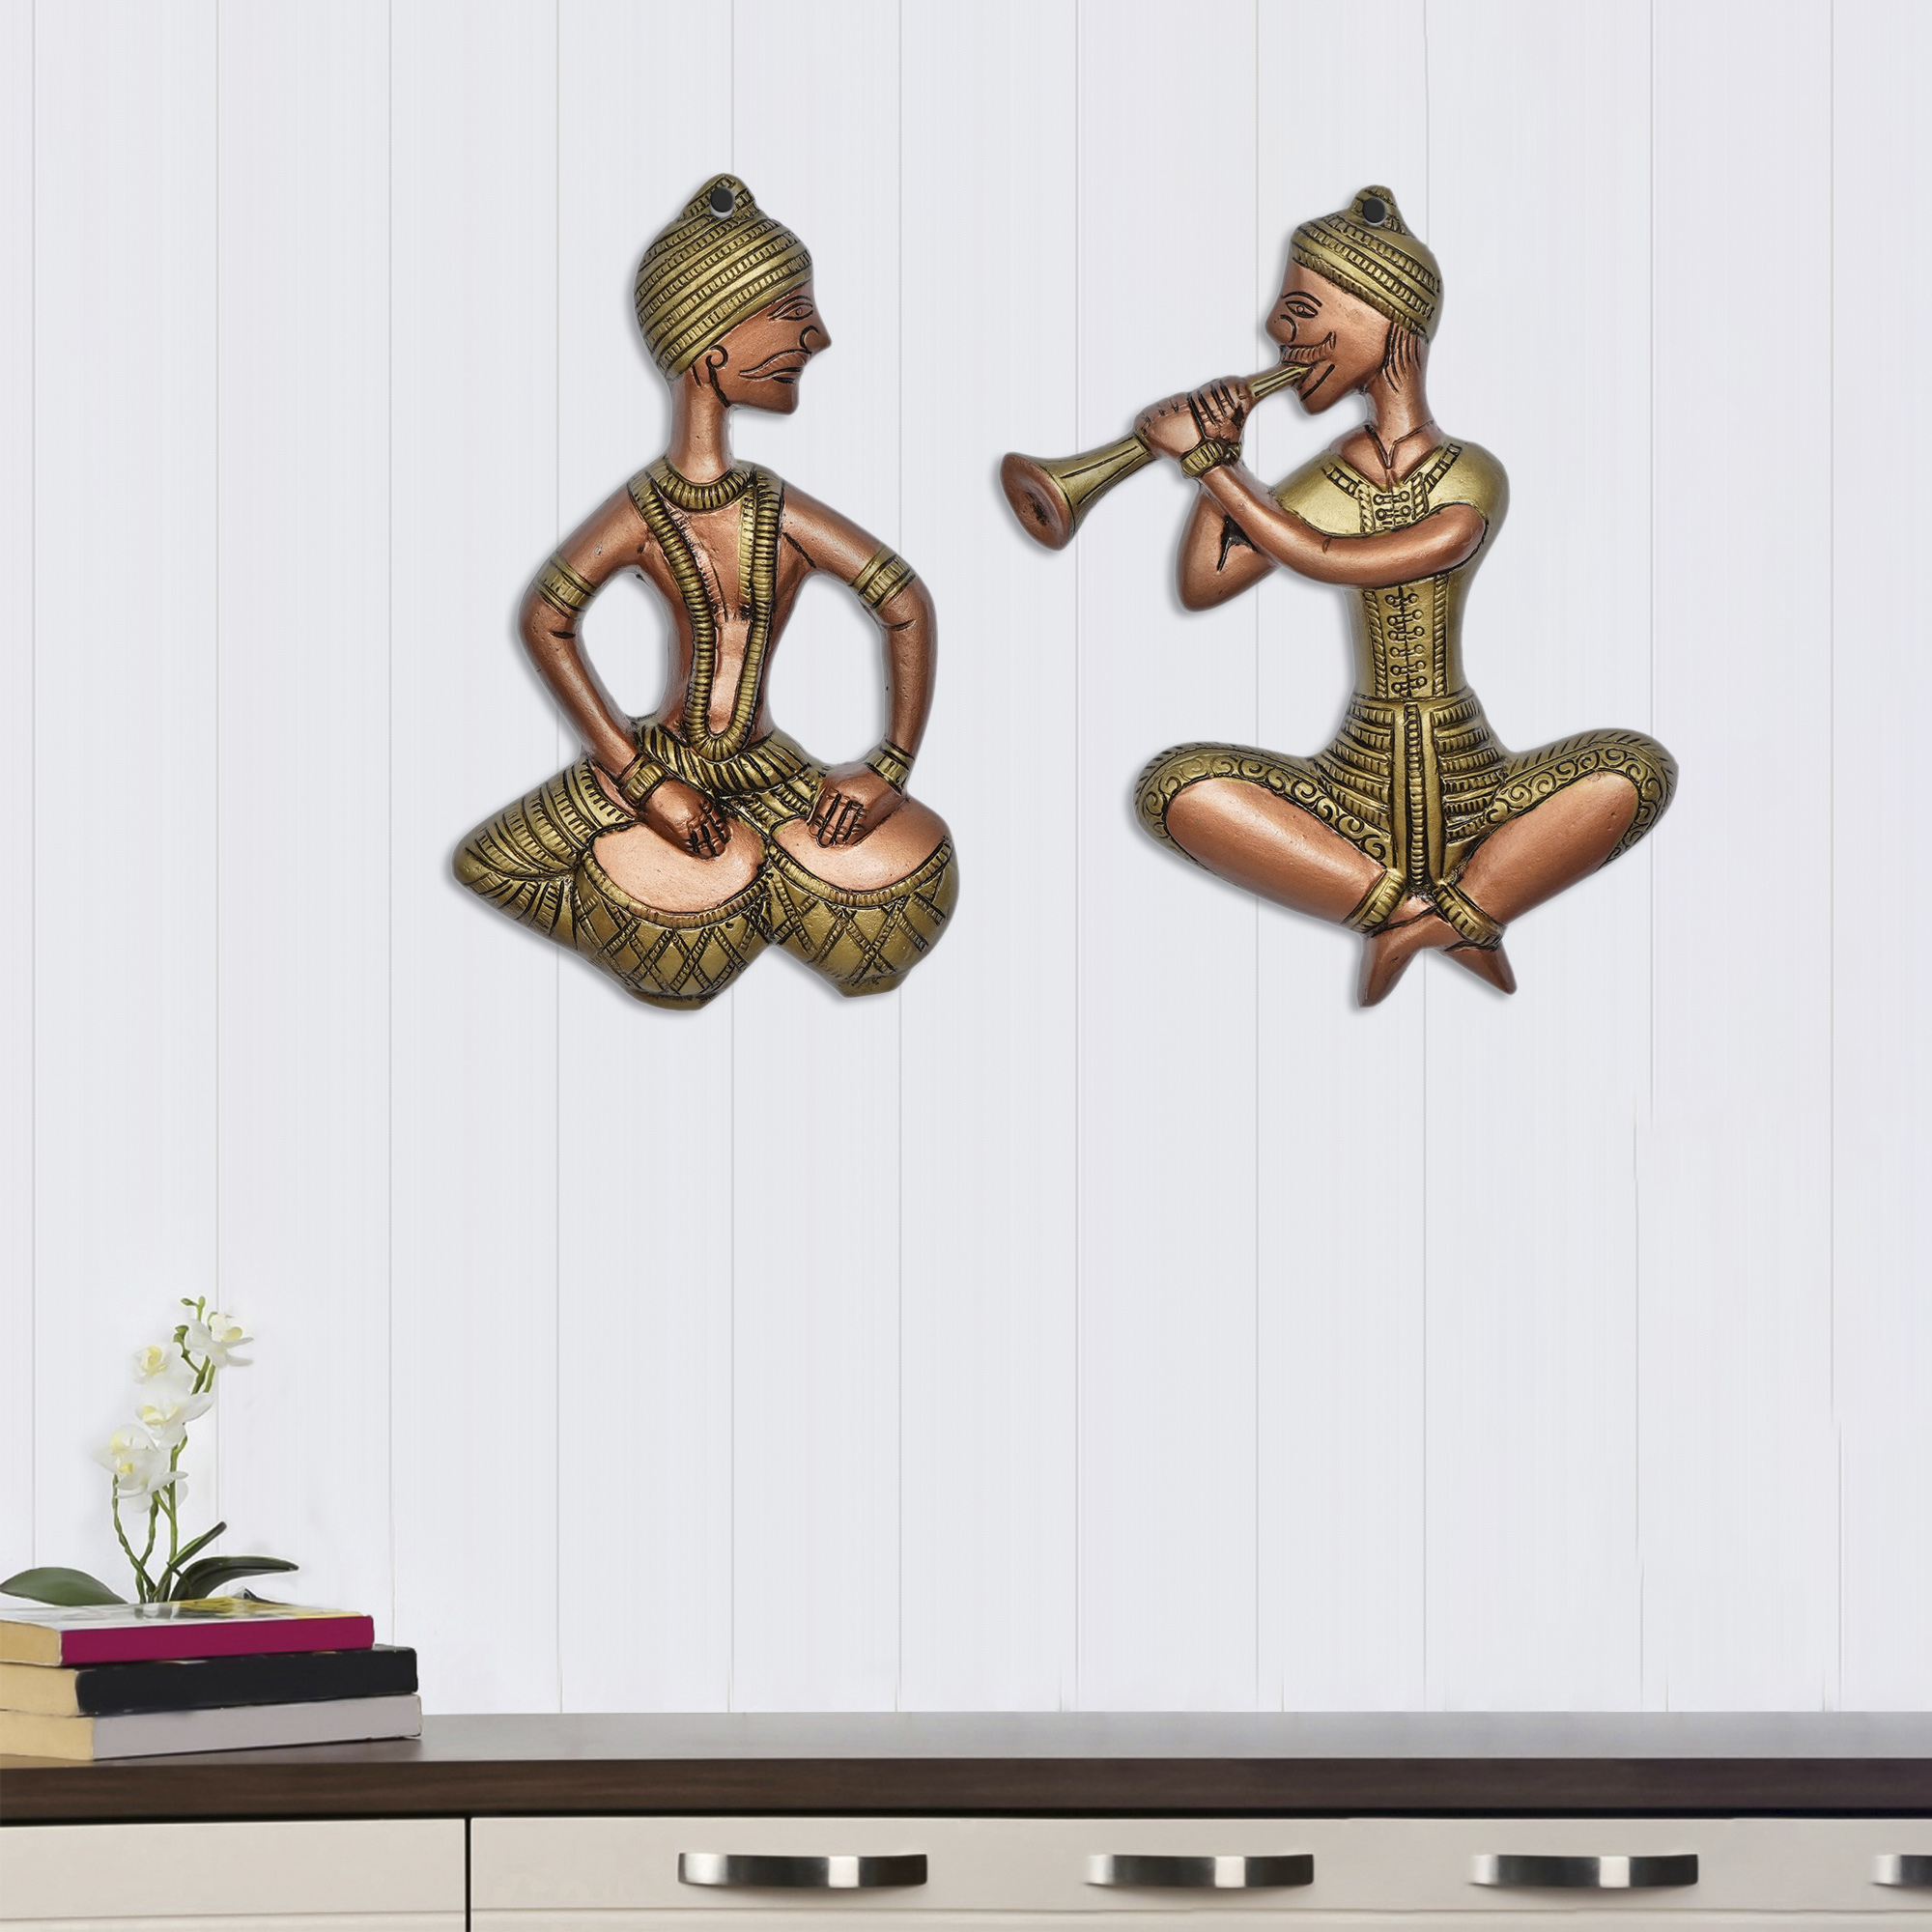 Set of 2 Musicians Brown and Golden Color Metal Wall Hanging Indian Home Decor